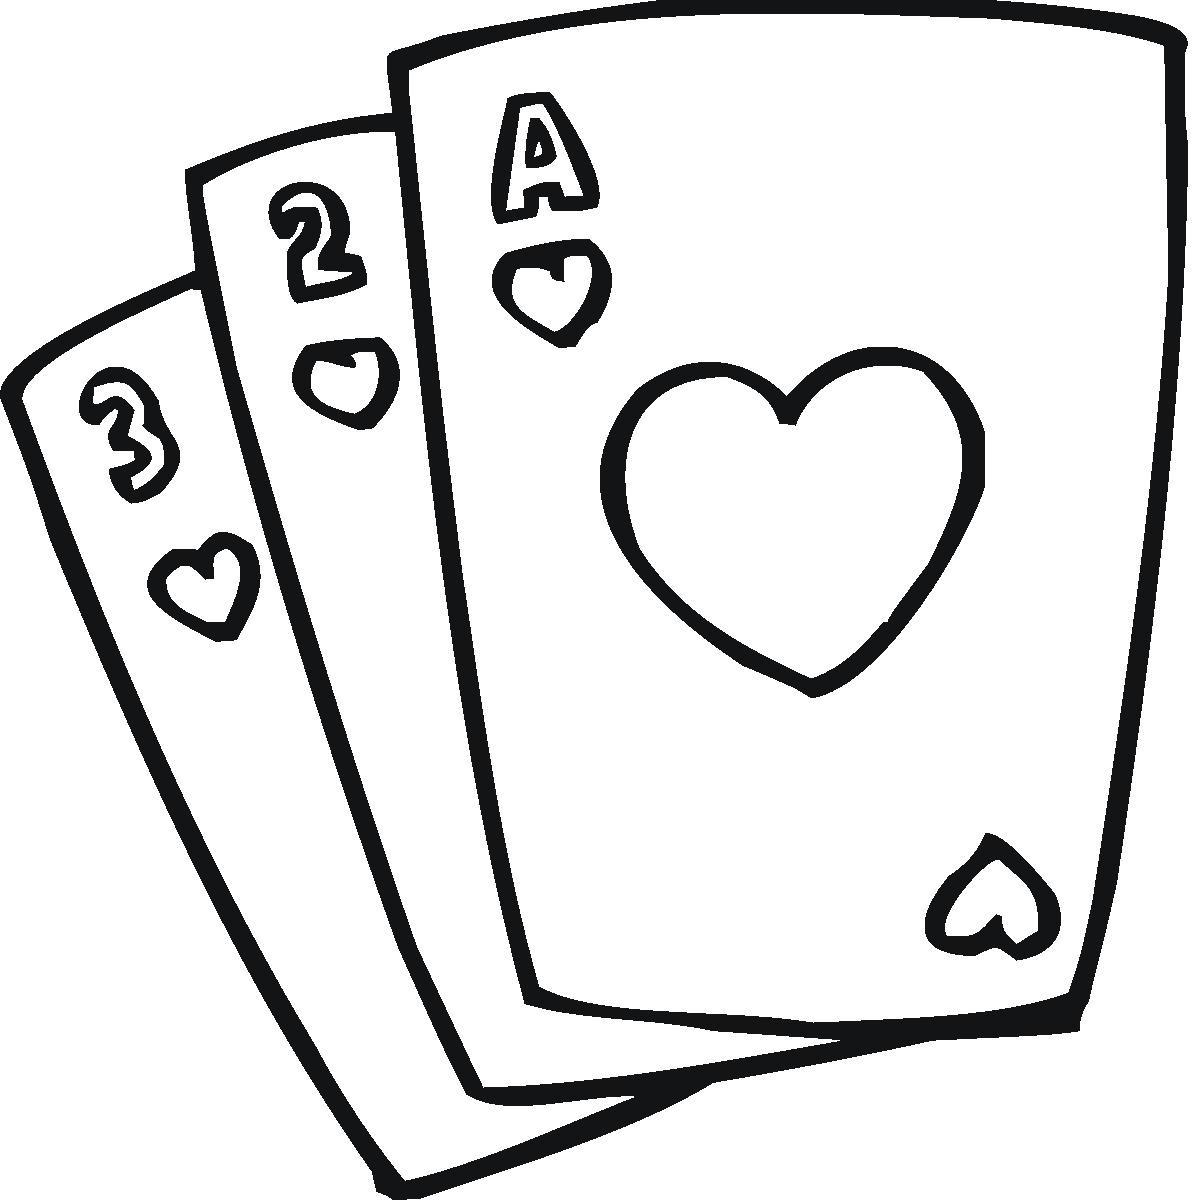 Cards clipart clip art. Images for kids playing